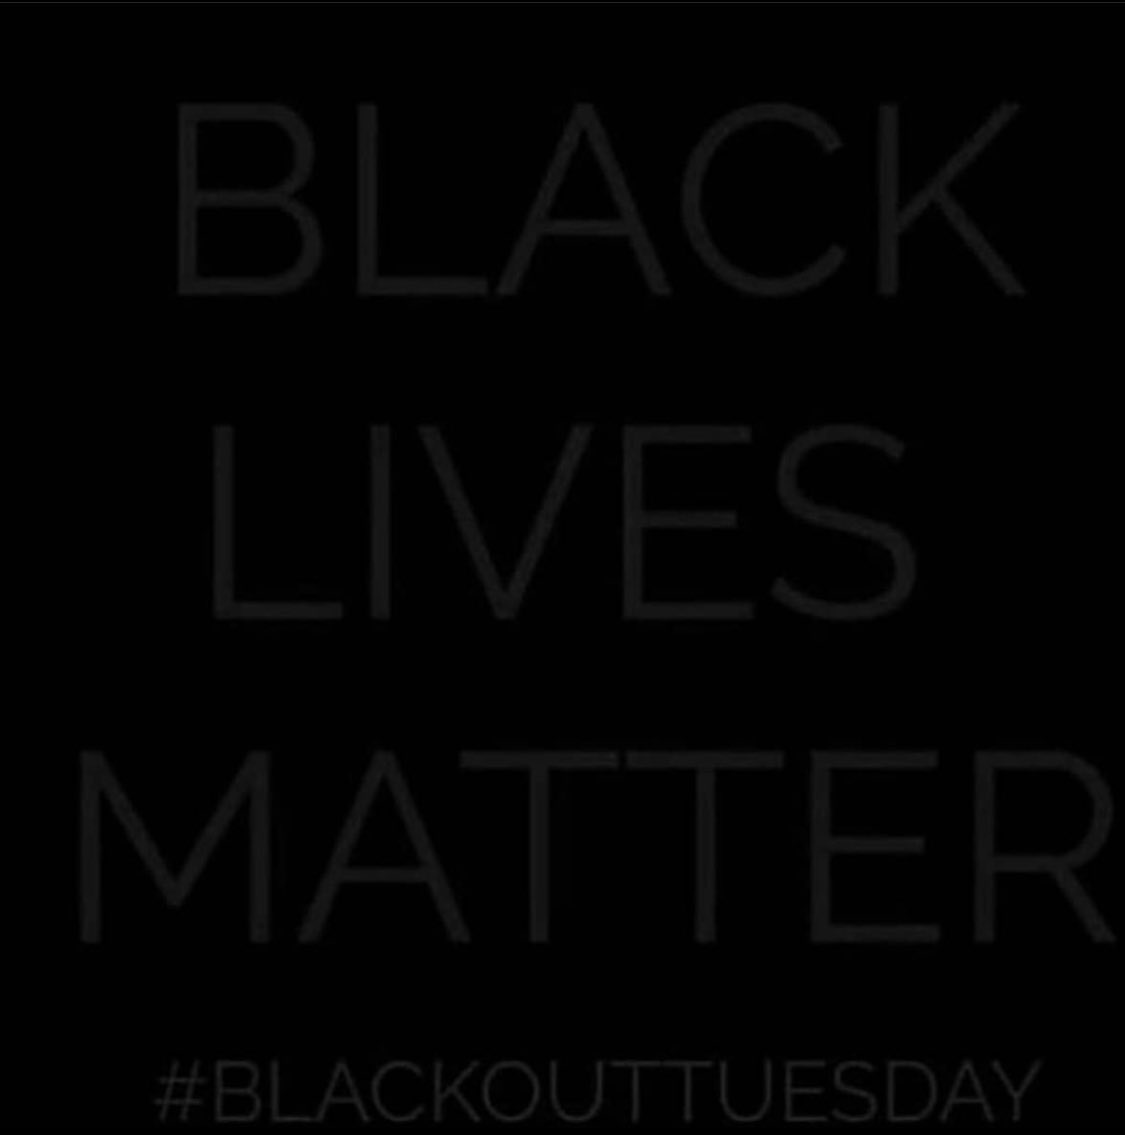 We matter and we always will. #blackouttuesday  #blacklivesmatter✊🏽✊🏾✊🏿 #socialinjusticemustend #historyrepeatsitself #riots #wemustbeheard #melaninrunsdeep #africanamerican #ourskinisbeautiful #black #beautiful #resilient #strong #blackgirlmagic  #stopkillingus #icantbreathe